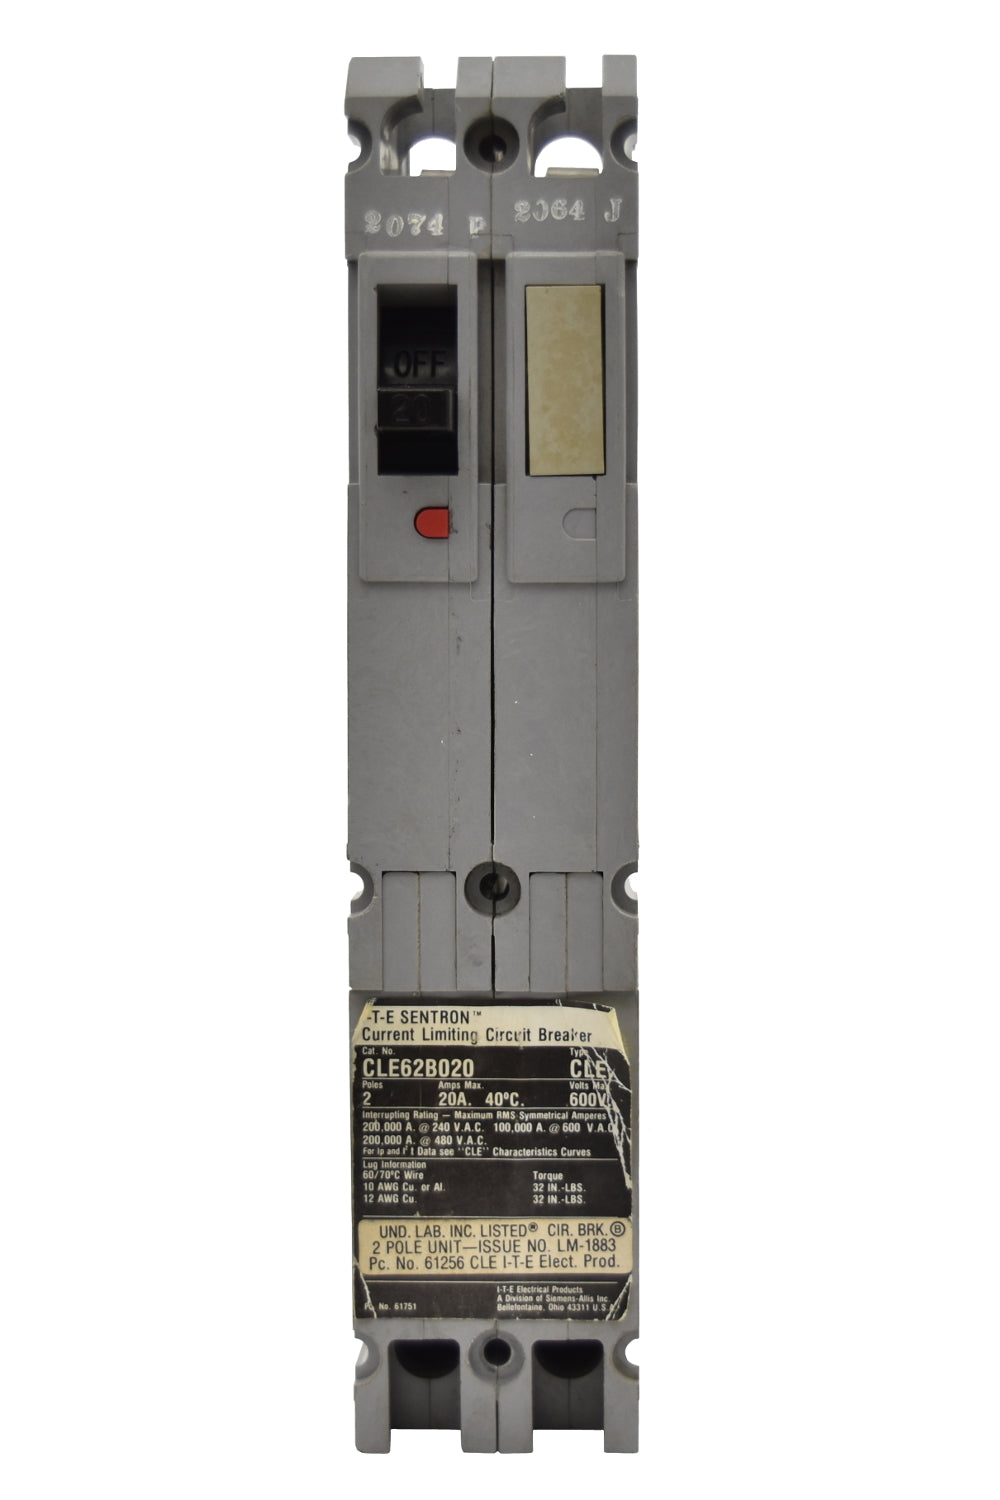 Siemens CLE62B015 Circuit Breakers